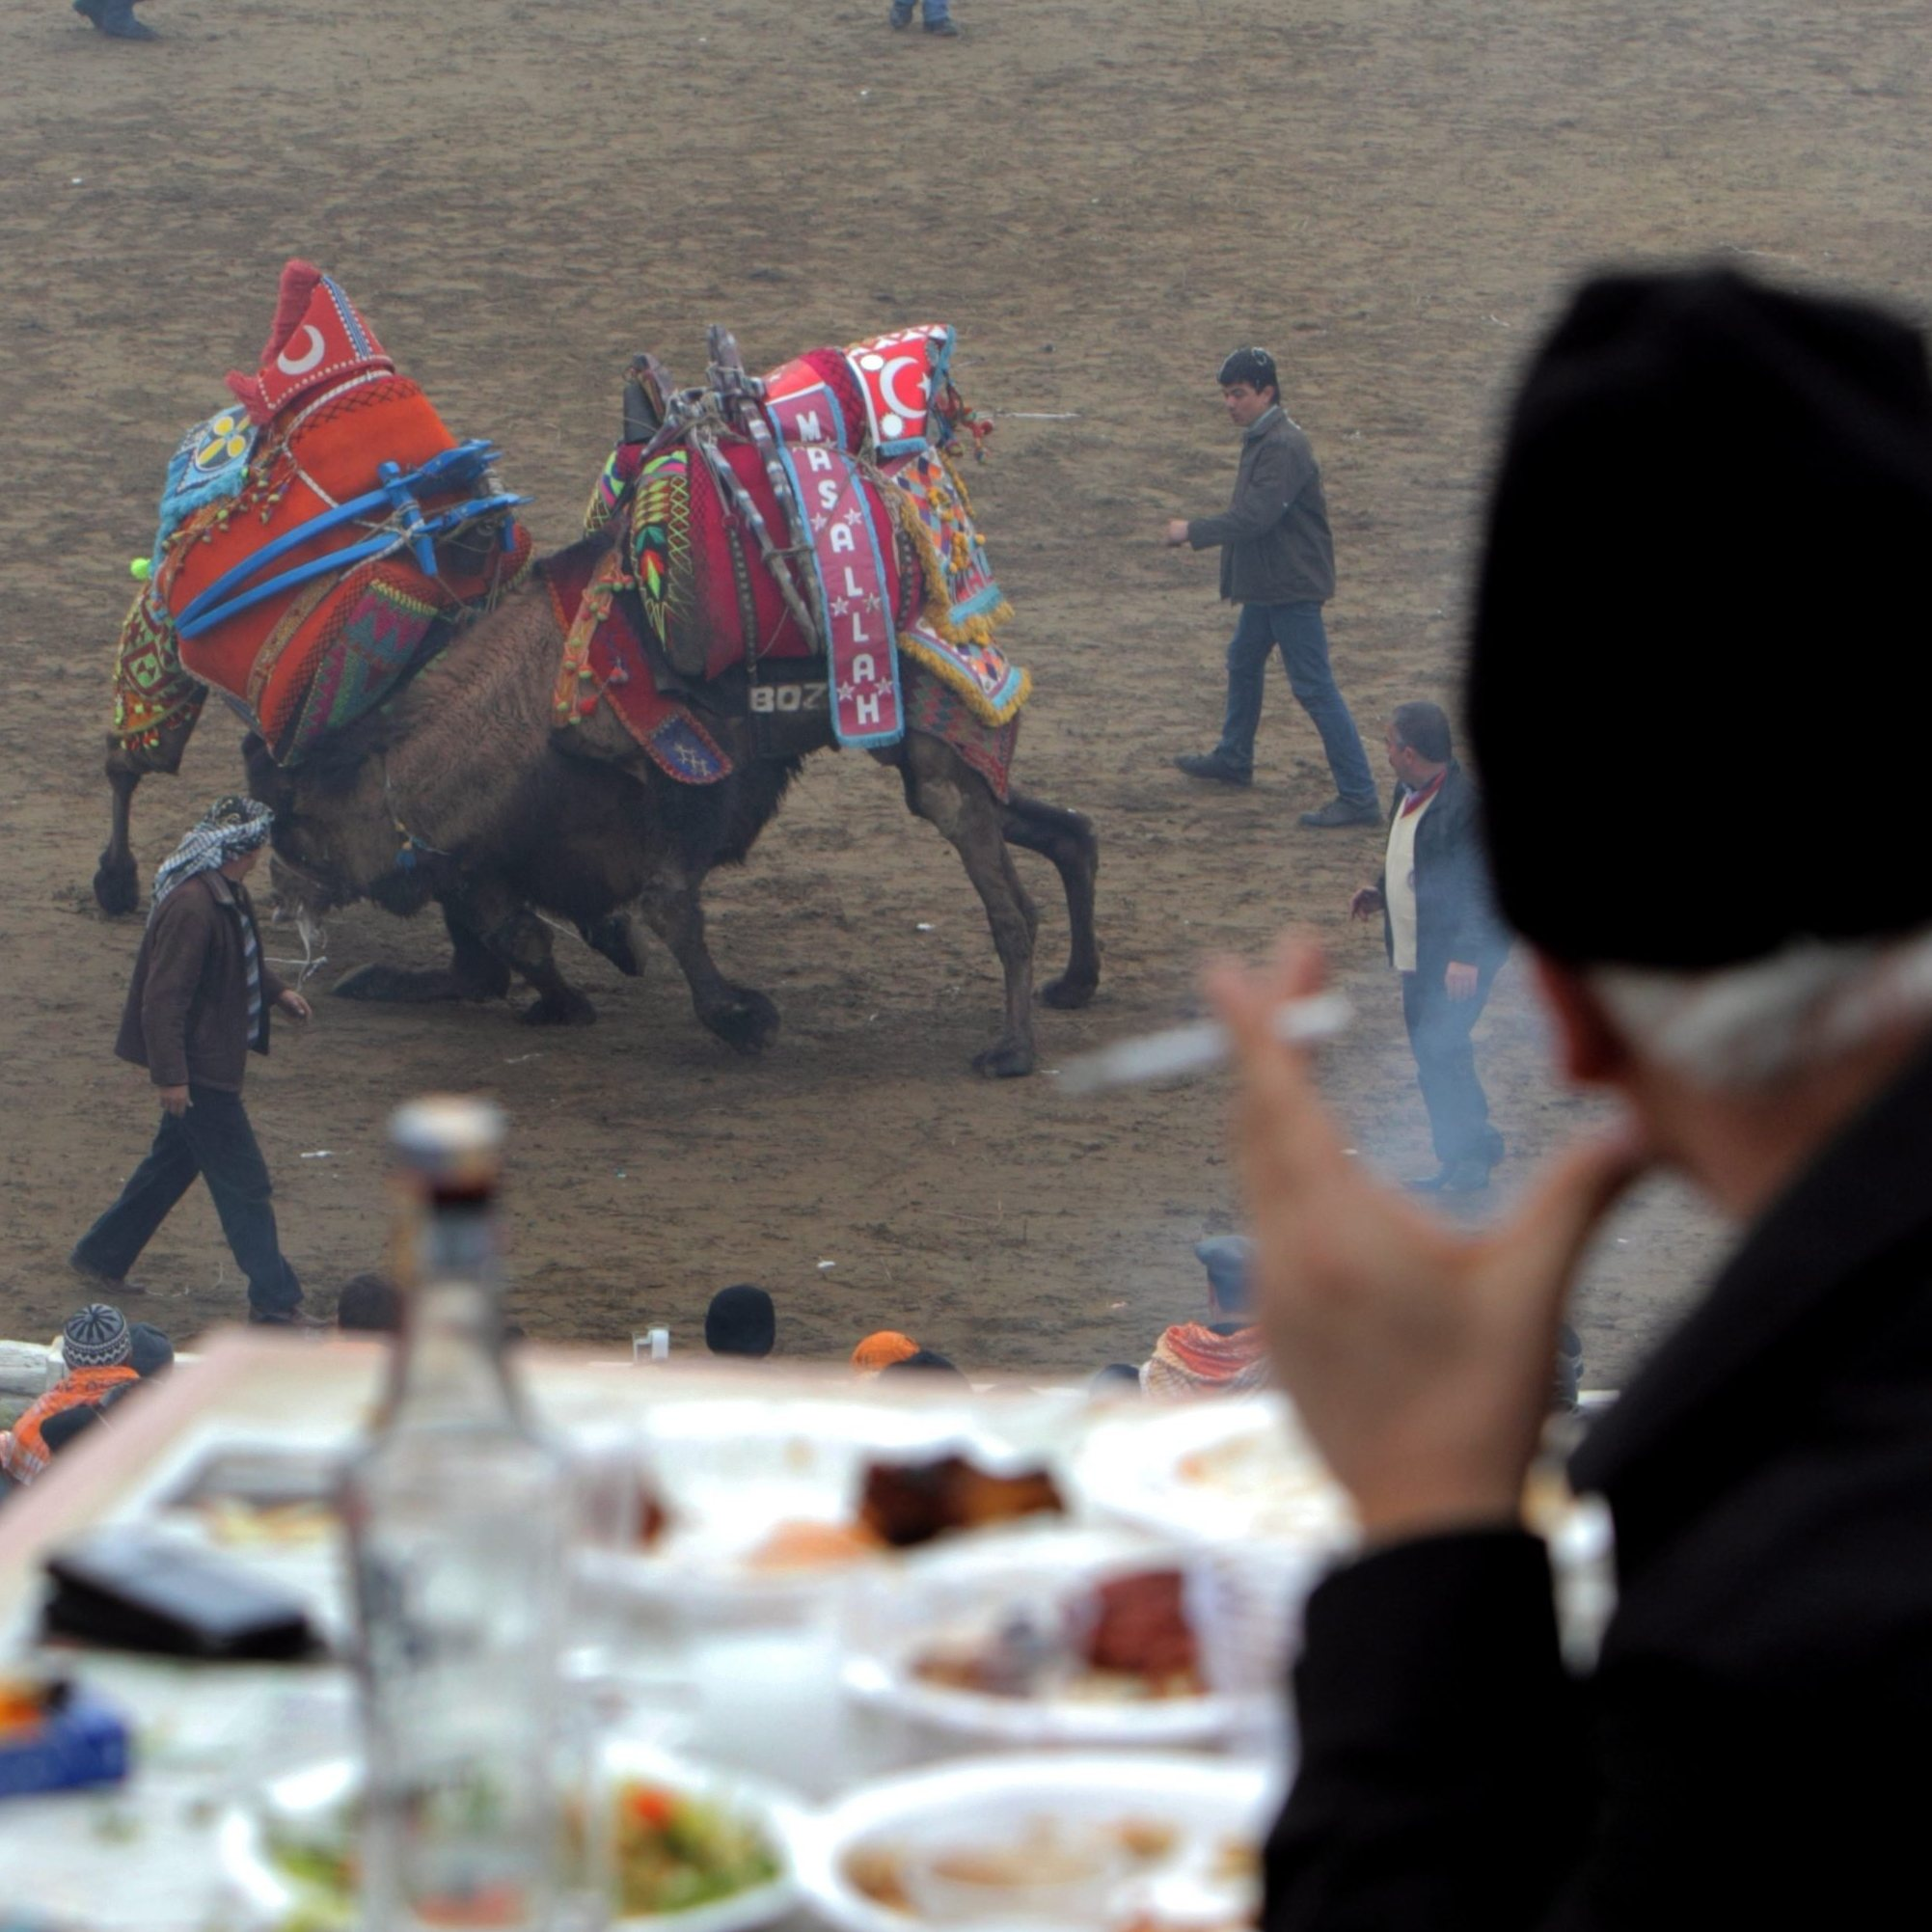 People watch wrestling camels as they enjoy a meal and the Turkish national drink raki during the Camel Wrestling Championship in Selcuk, on Jan. 15, 2012.